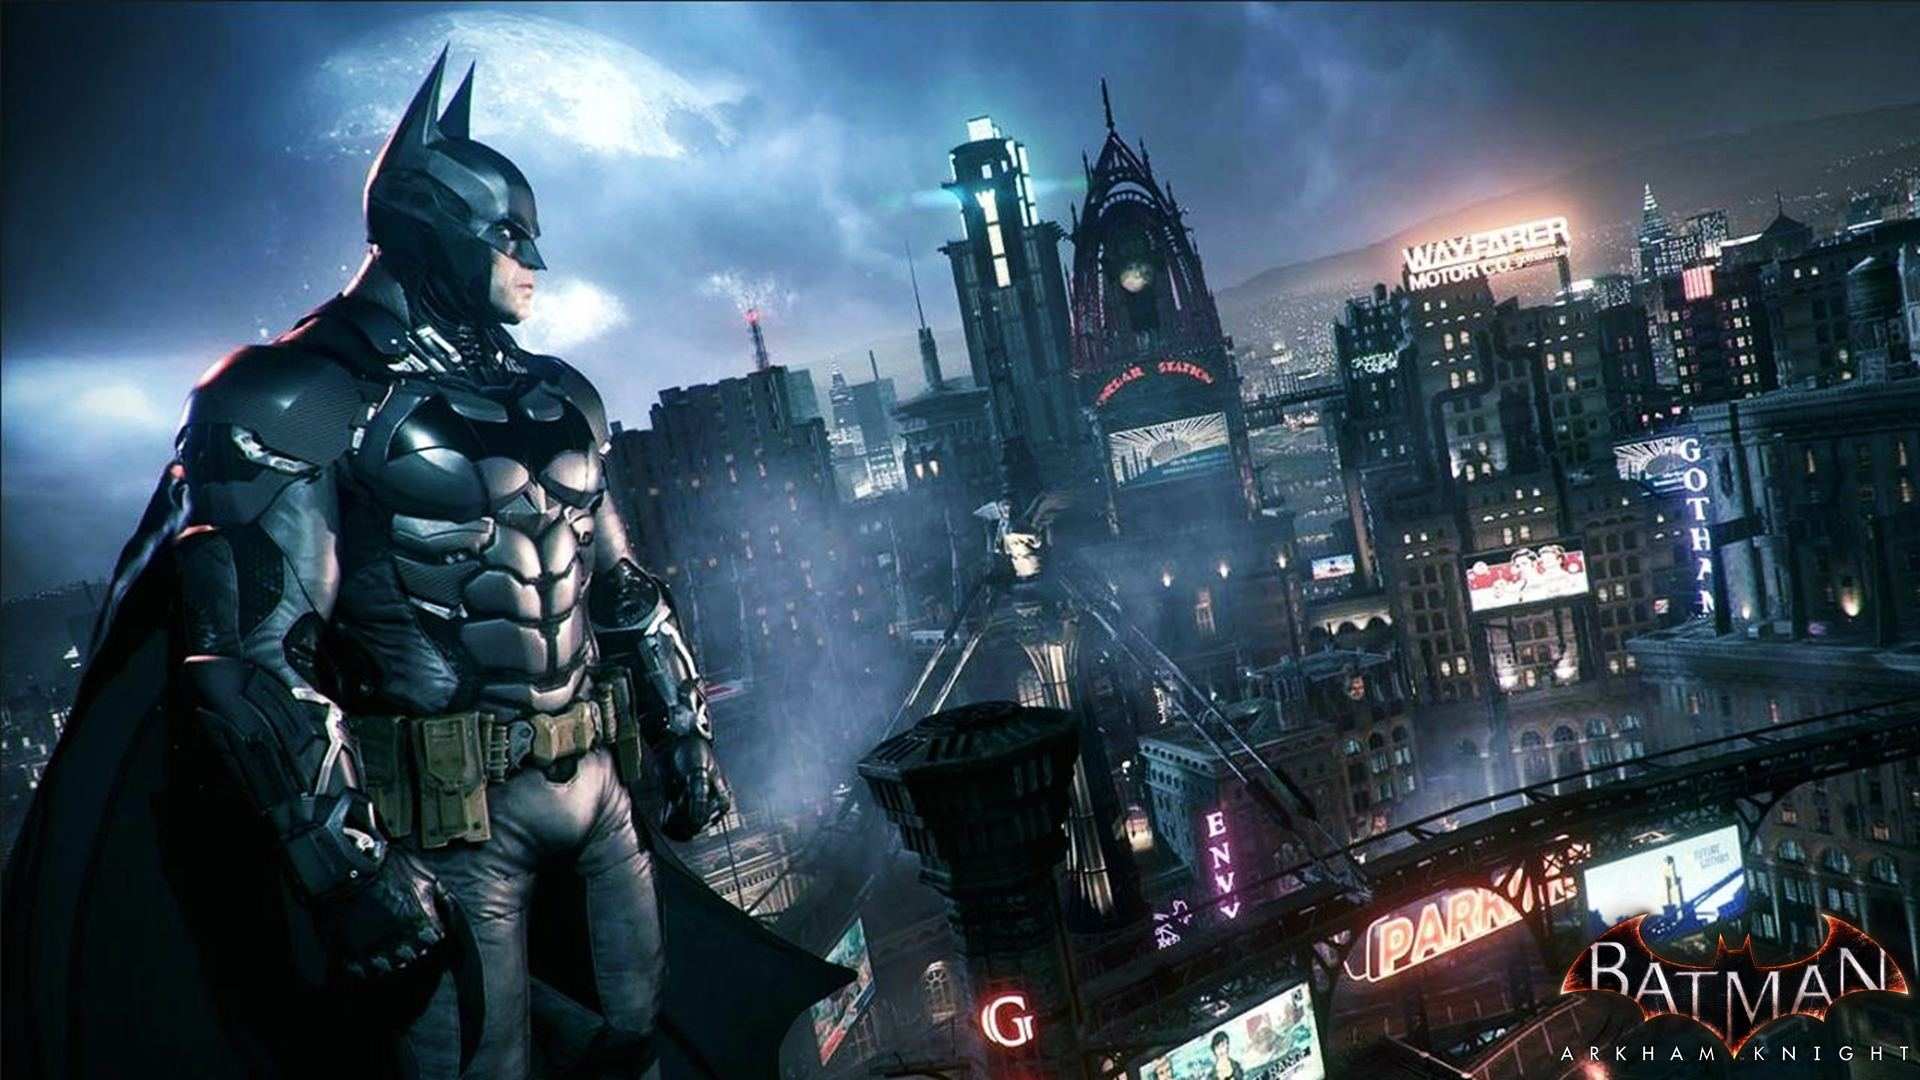 2014 Batman Arkham Knight Wallpaper HD 1920x1080